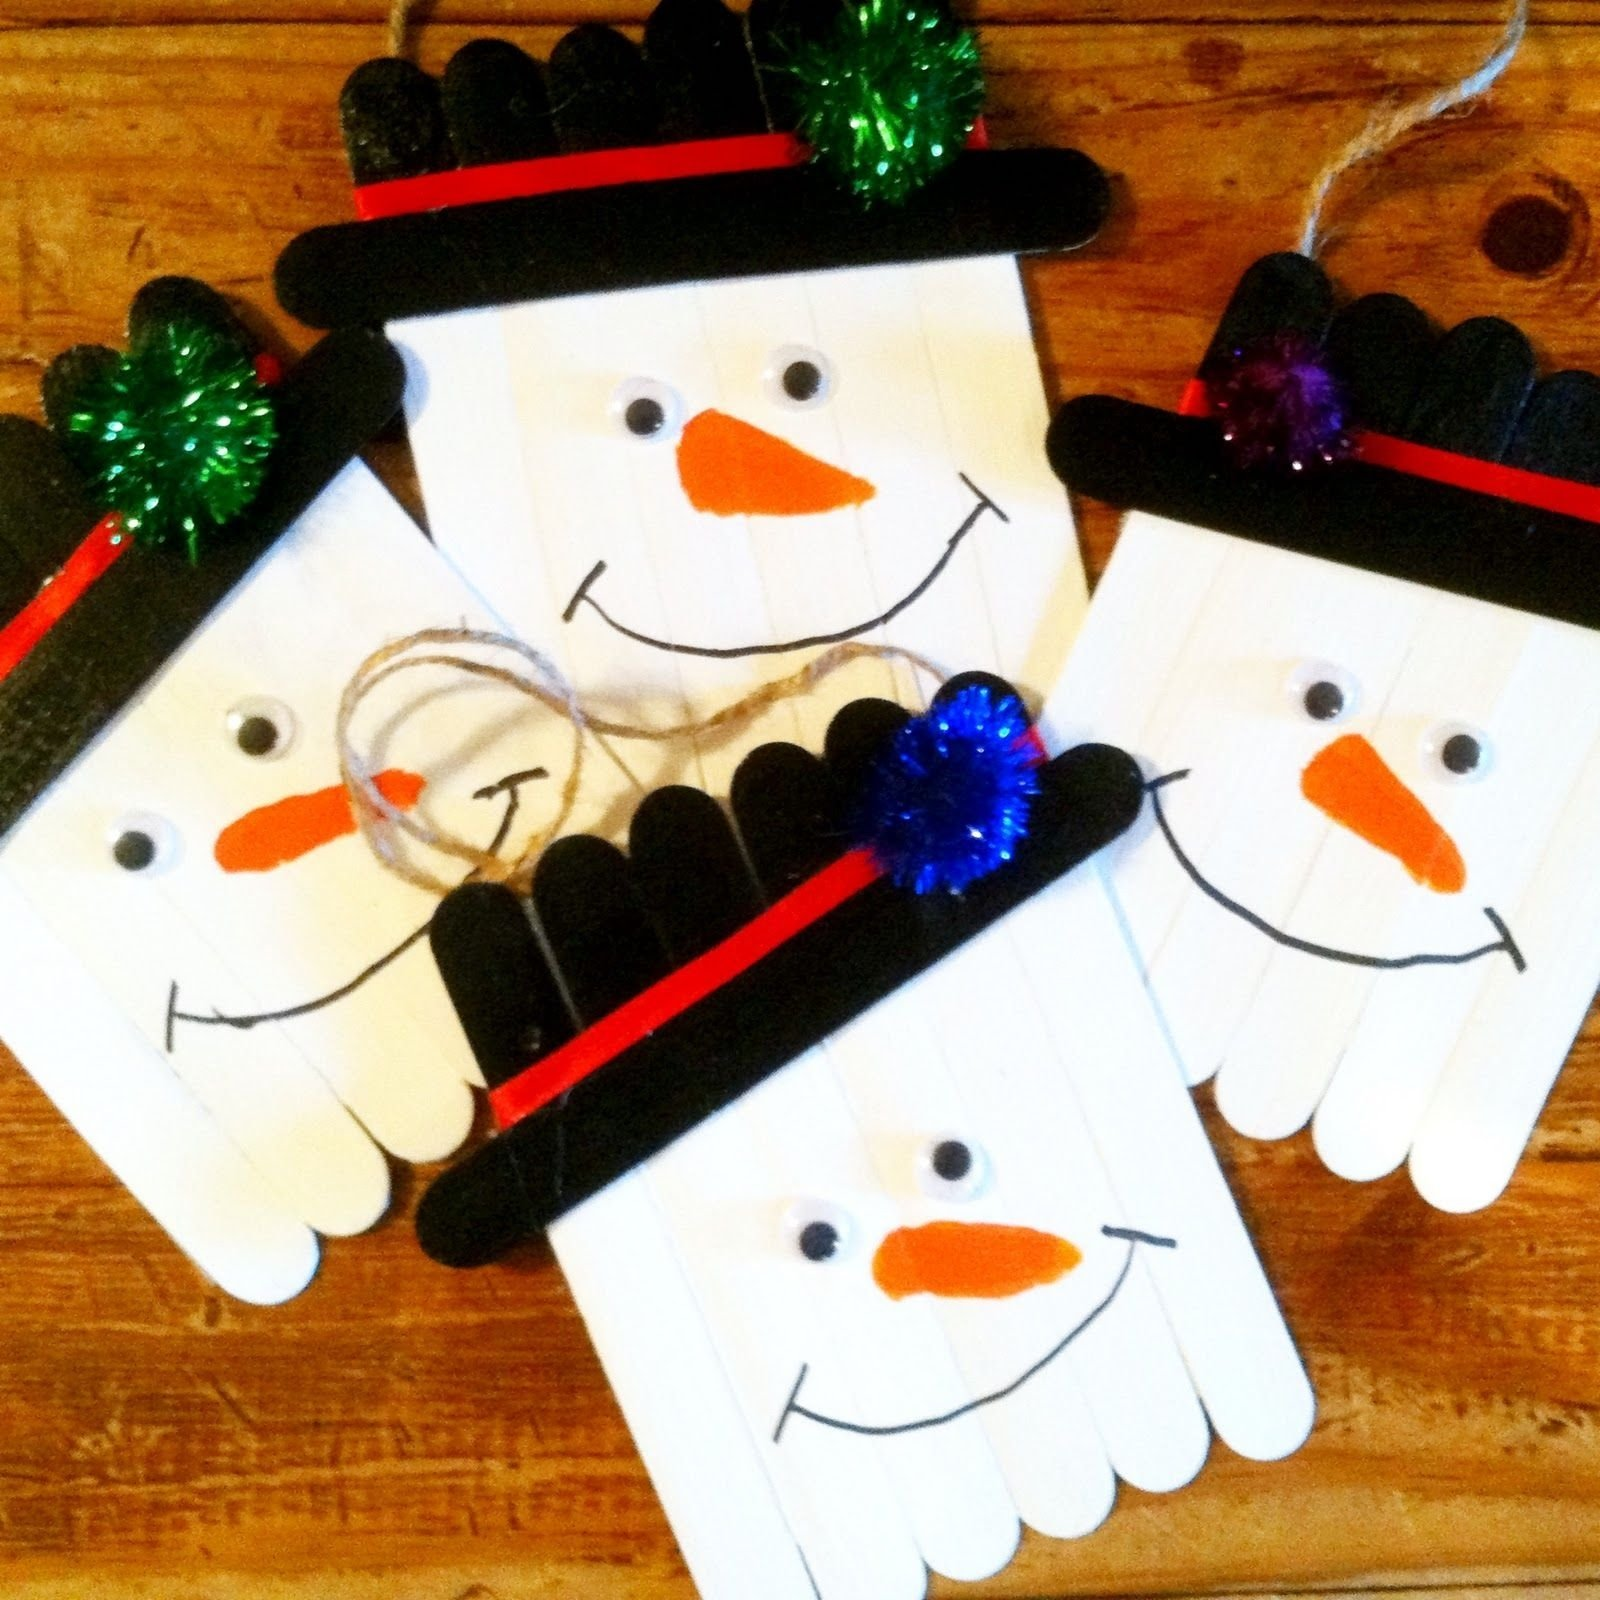 10 Awesome Pinterest Christmas Ideas For Kids christmas crafts pinterest we made some christmas crafts this week 2020